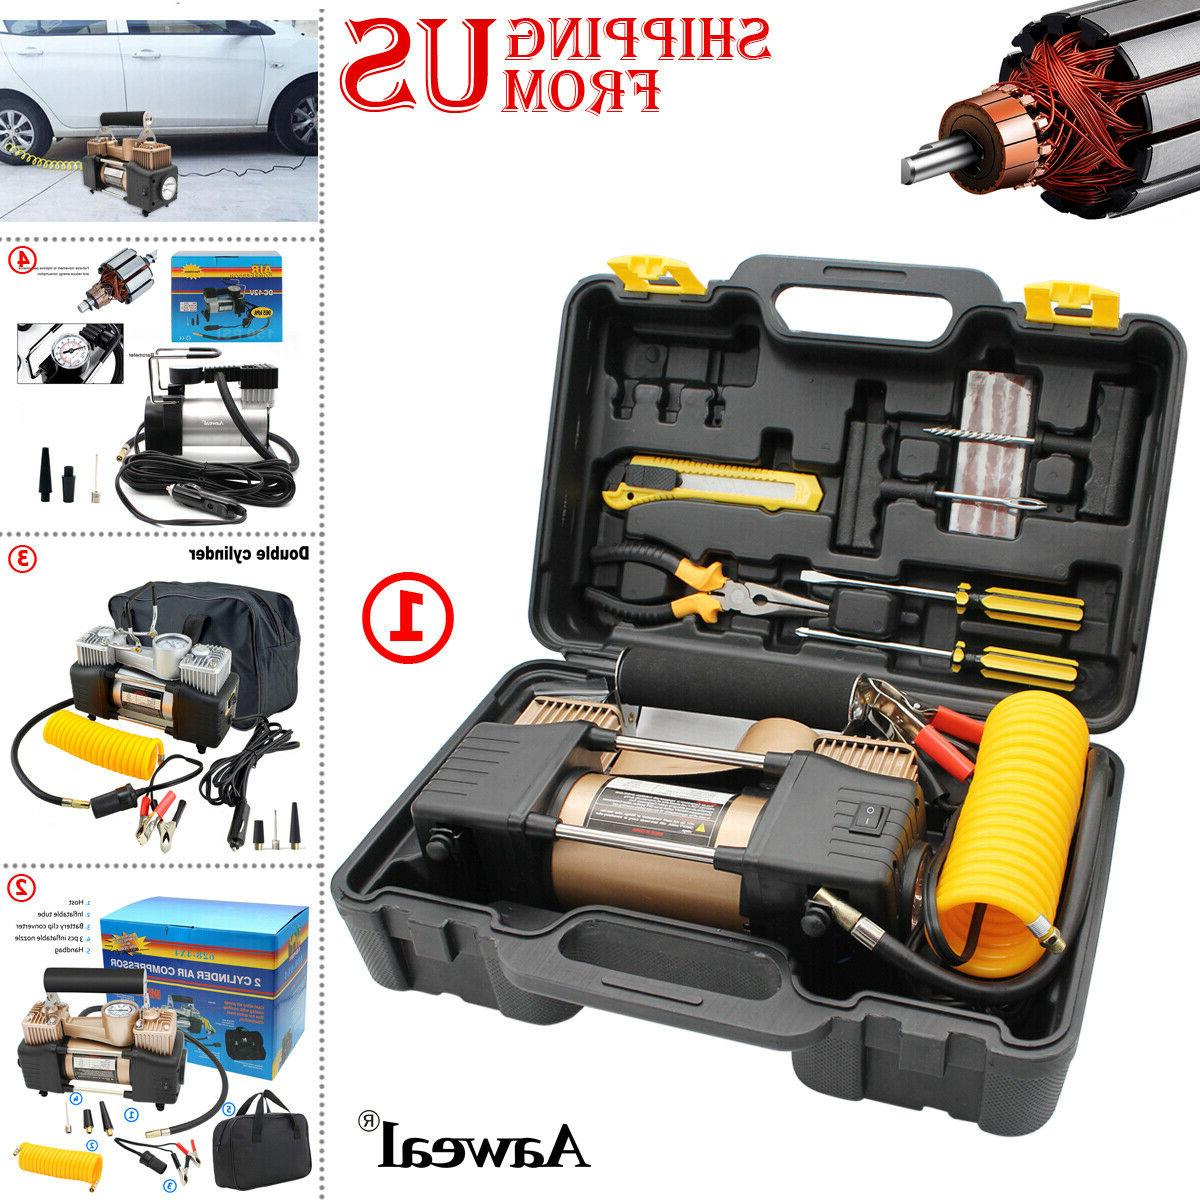 heavy duty portable air compressor for car